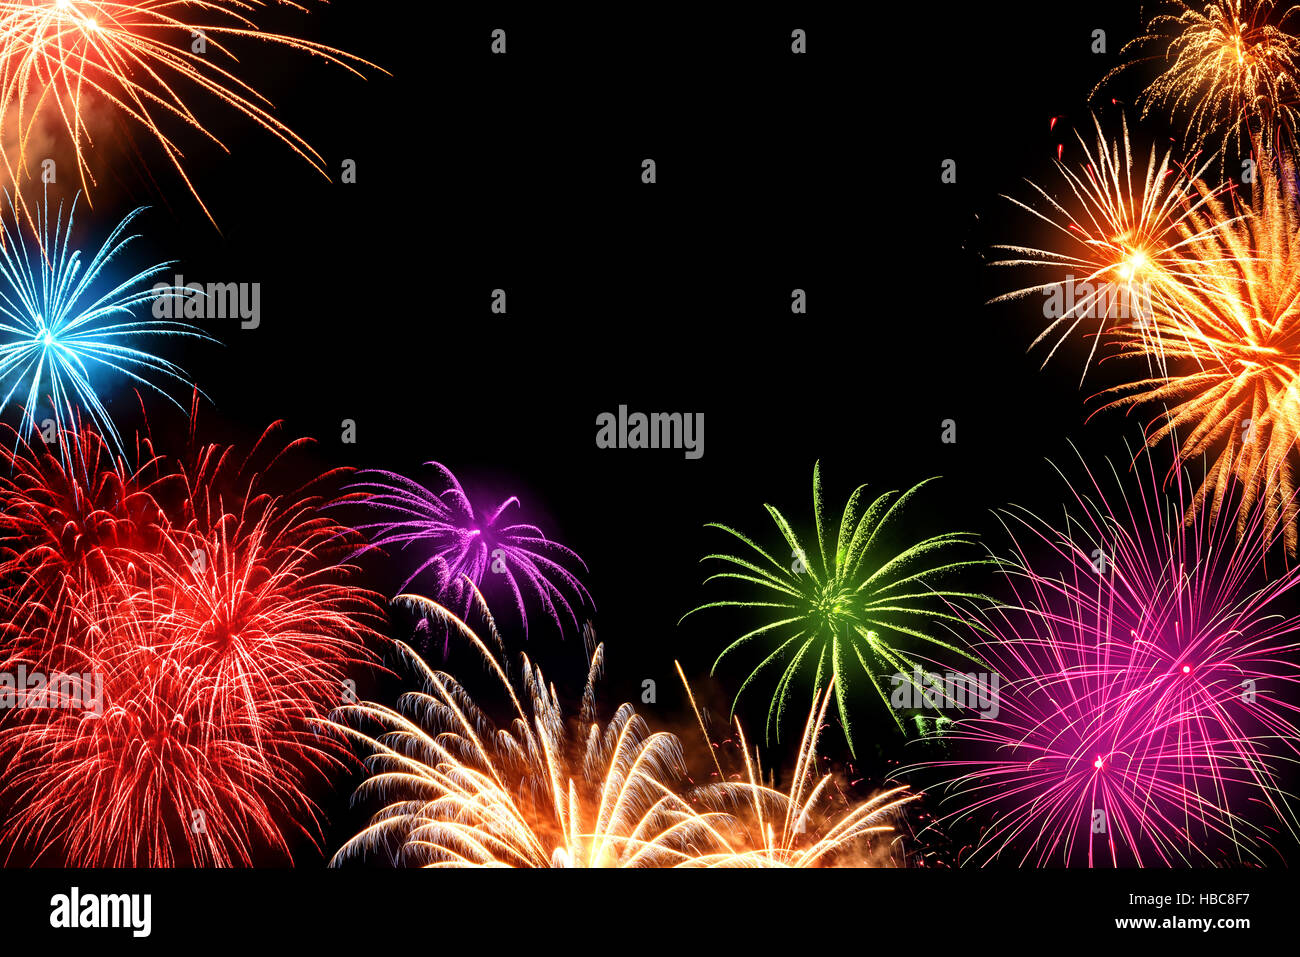 gorgeous multi colored fireworks as a border on black background ideal for new year or other celebration events